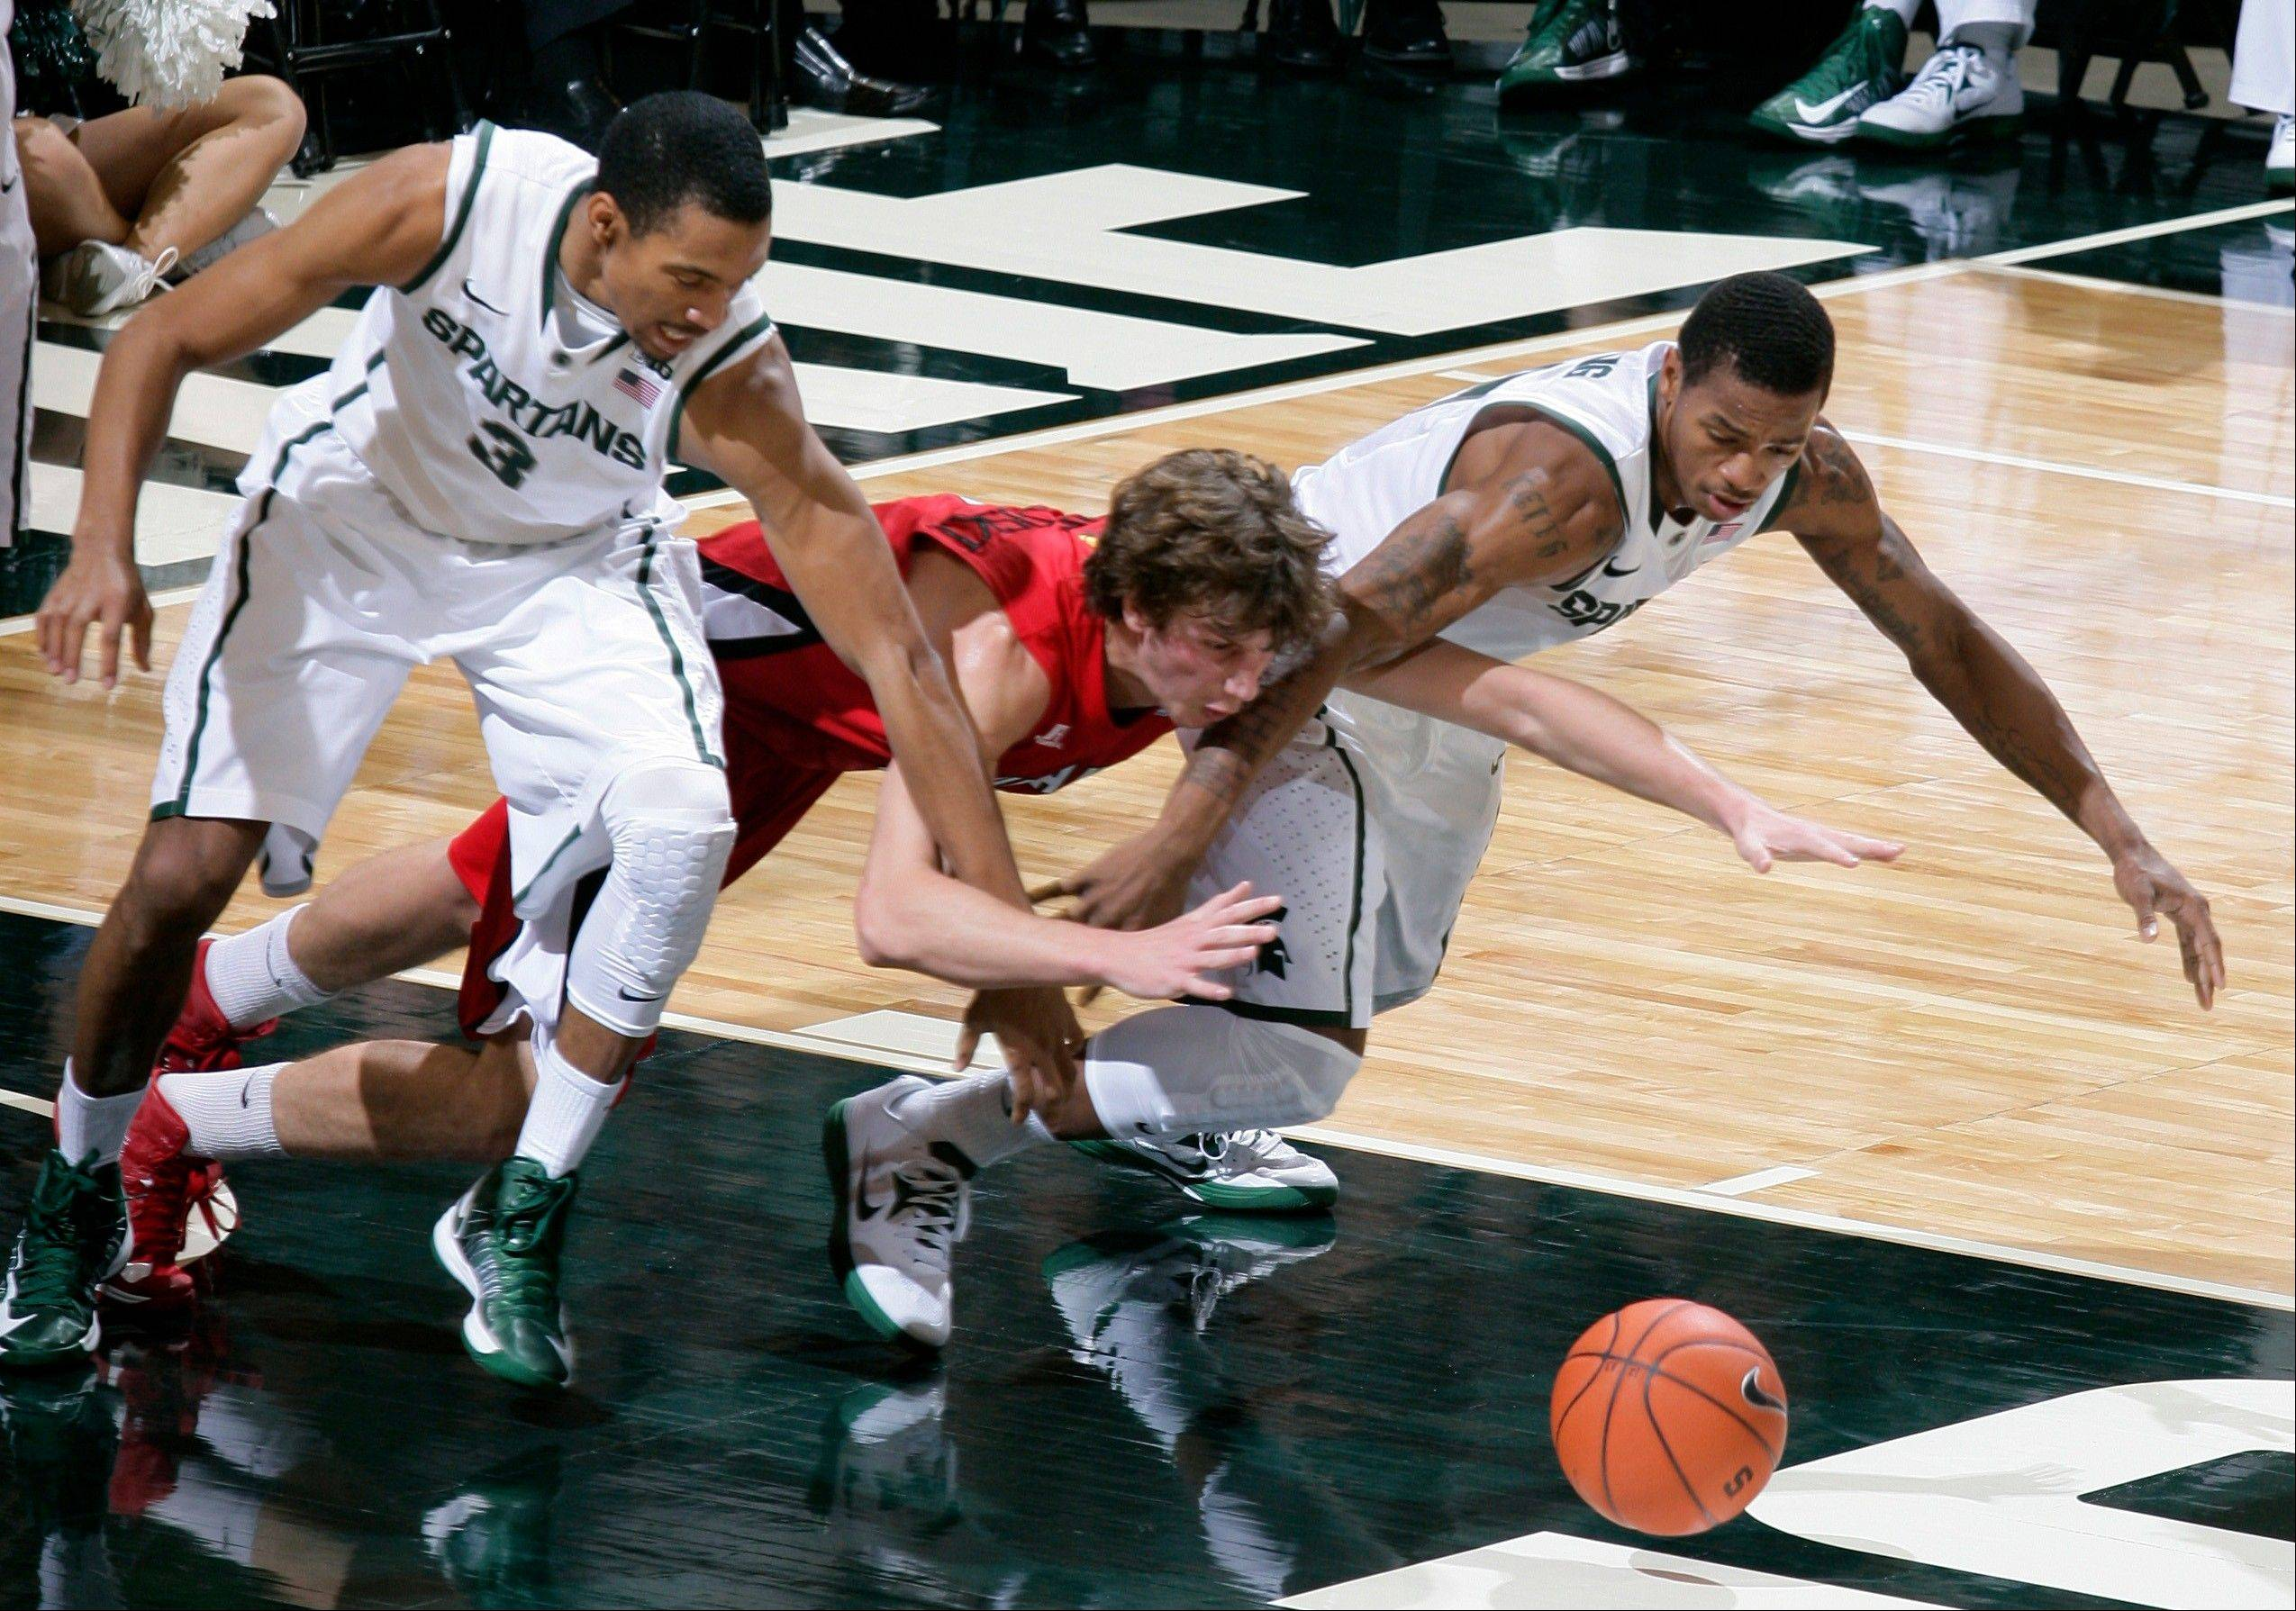 Michigan State�s Brandan Kearney, left, Louisiana Lafayette�s Steven Wronkoski, center, and Michigan State�s Keith Appling dive for a loose ball during the first half of Sunday�s game in East Lansing, Mich.